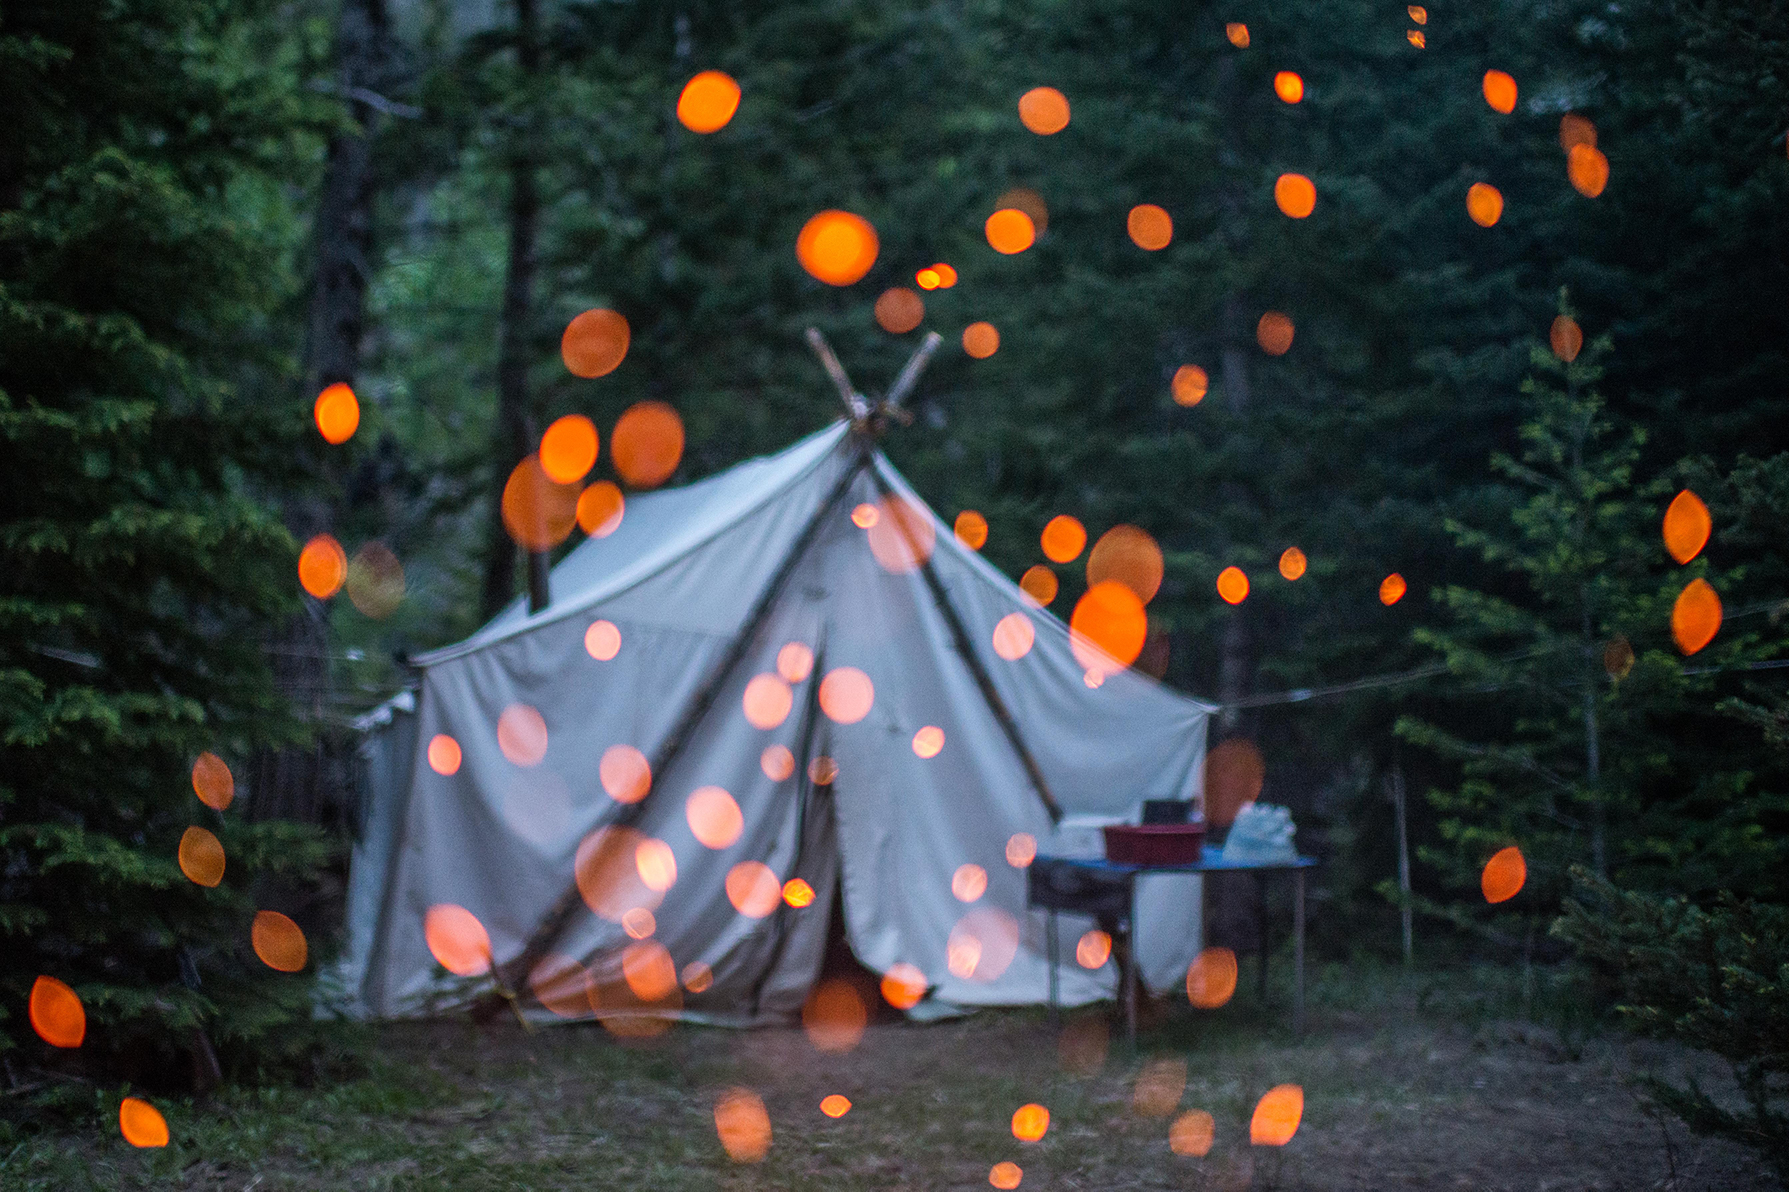 Tent in Wyoming backcountry used by researchers and outfitters during elk migration